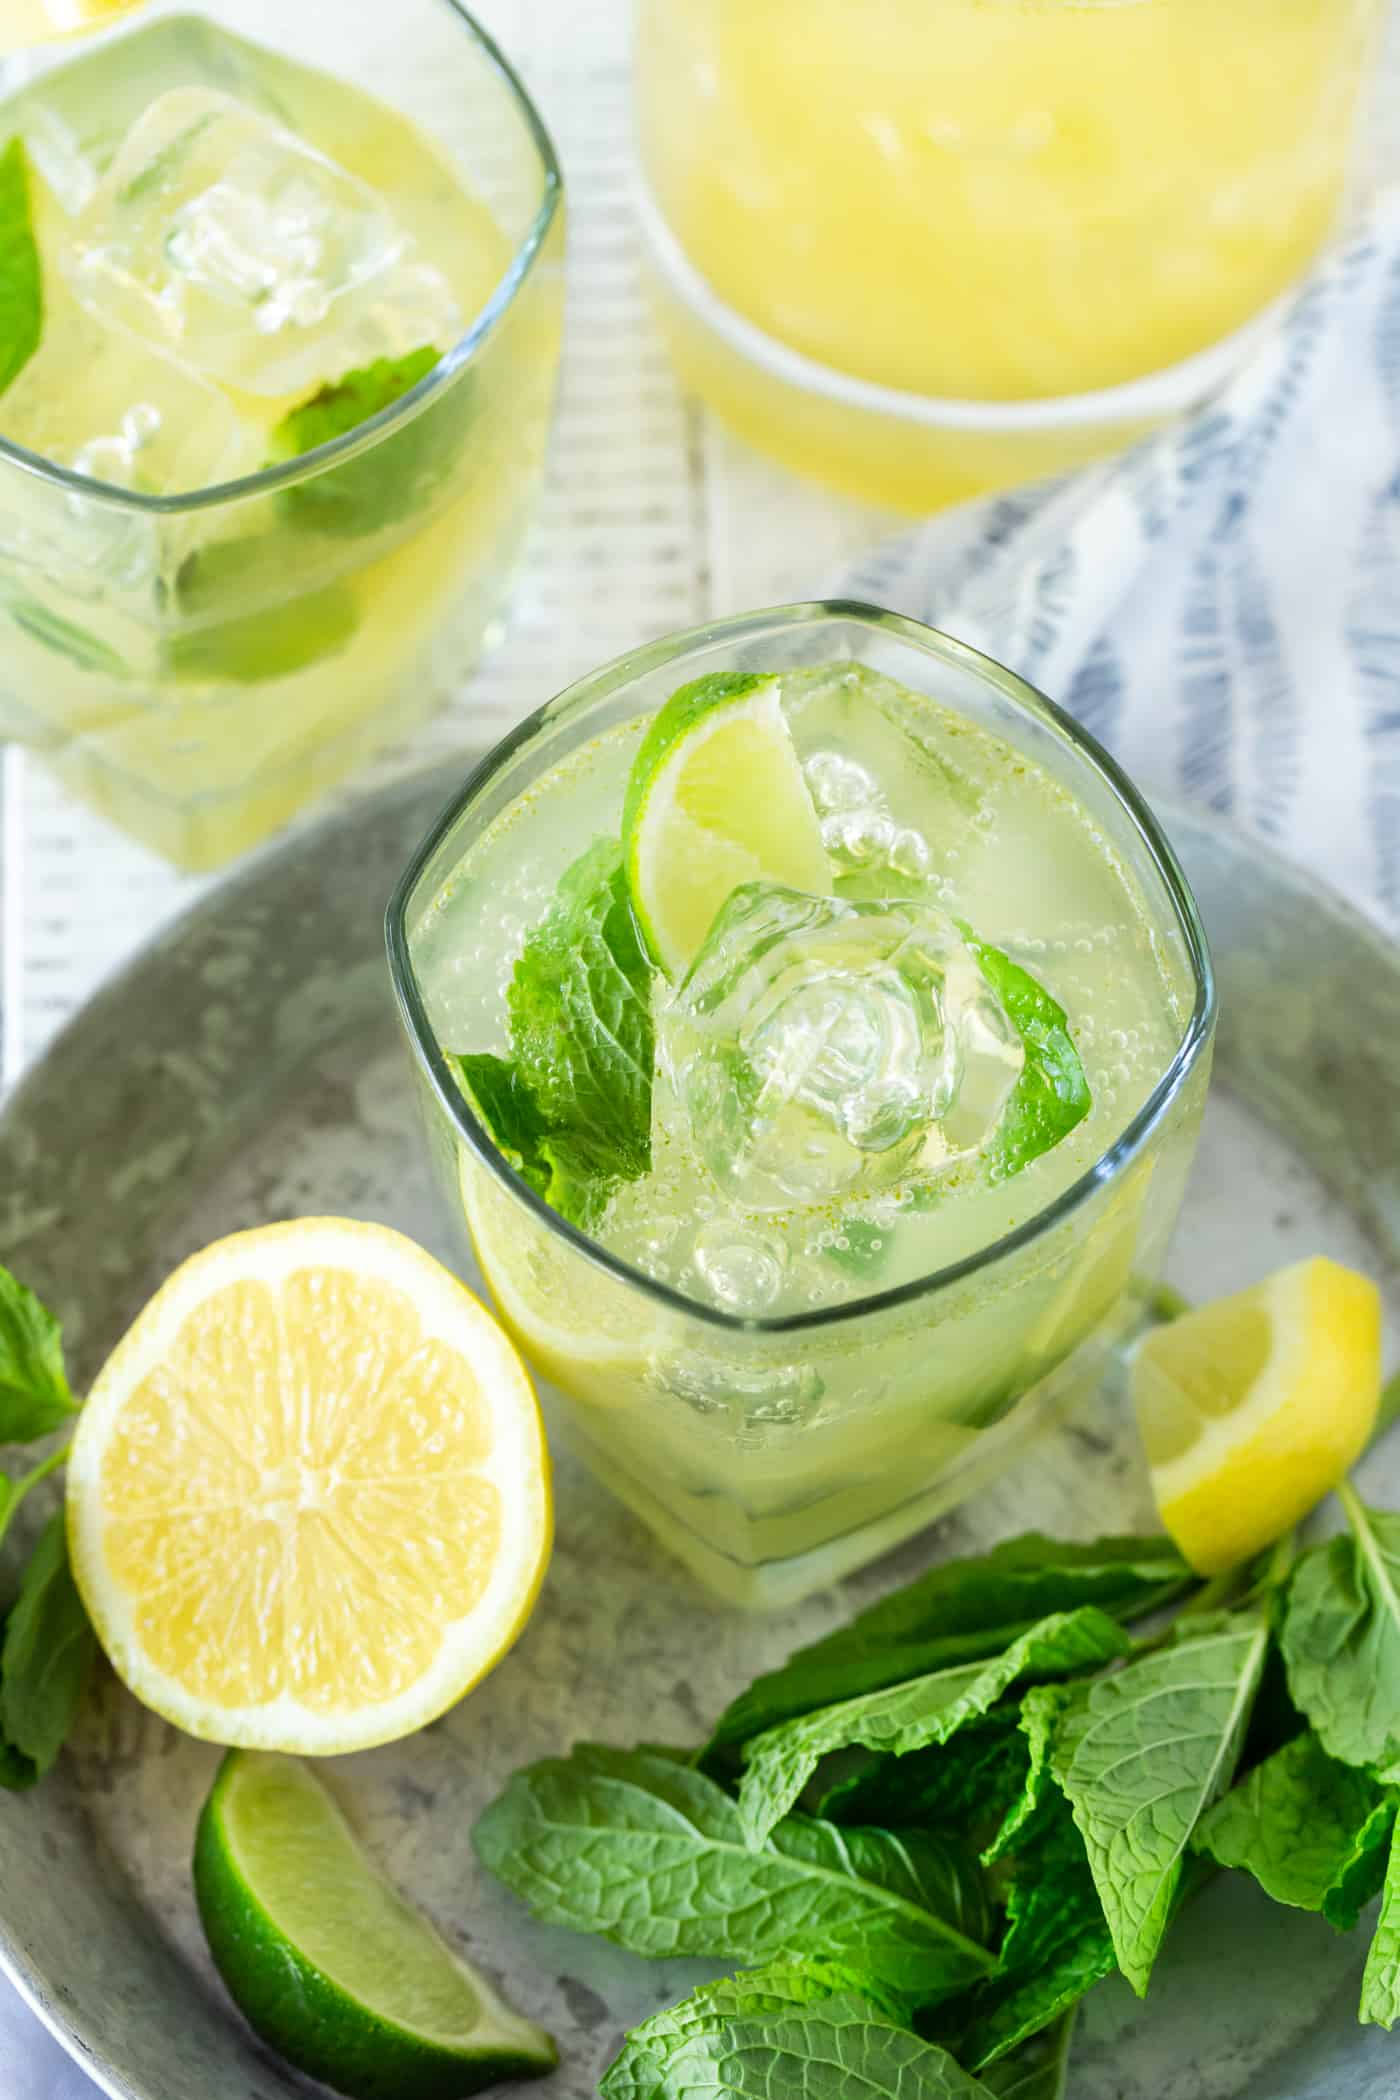 Top dowm image of Bootleg cocktails in a silver tray with lemon wedge, mint leaves and lime slices for garnish.